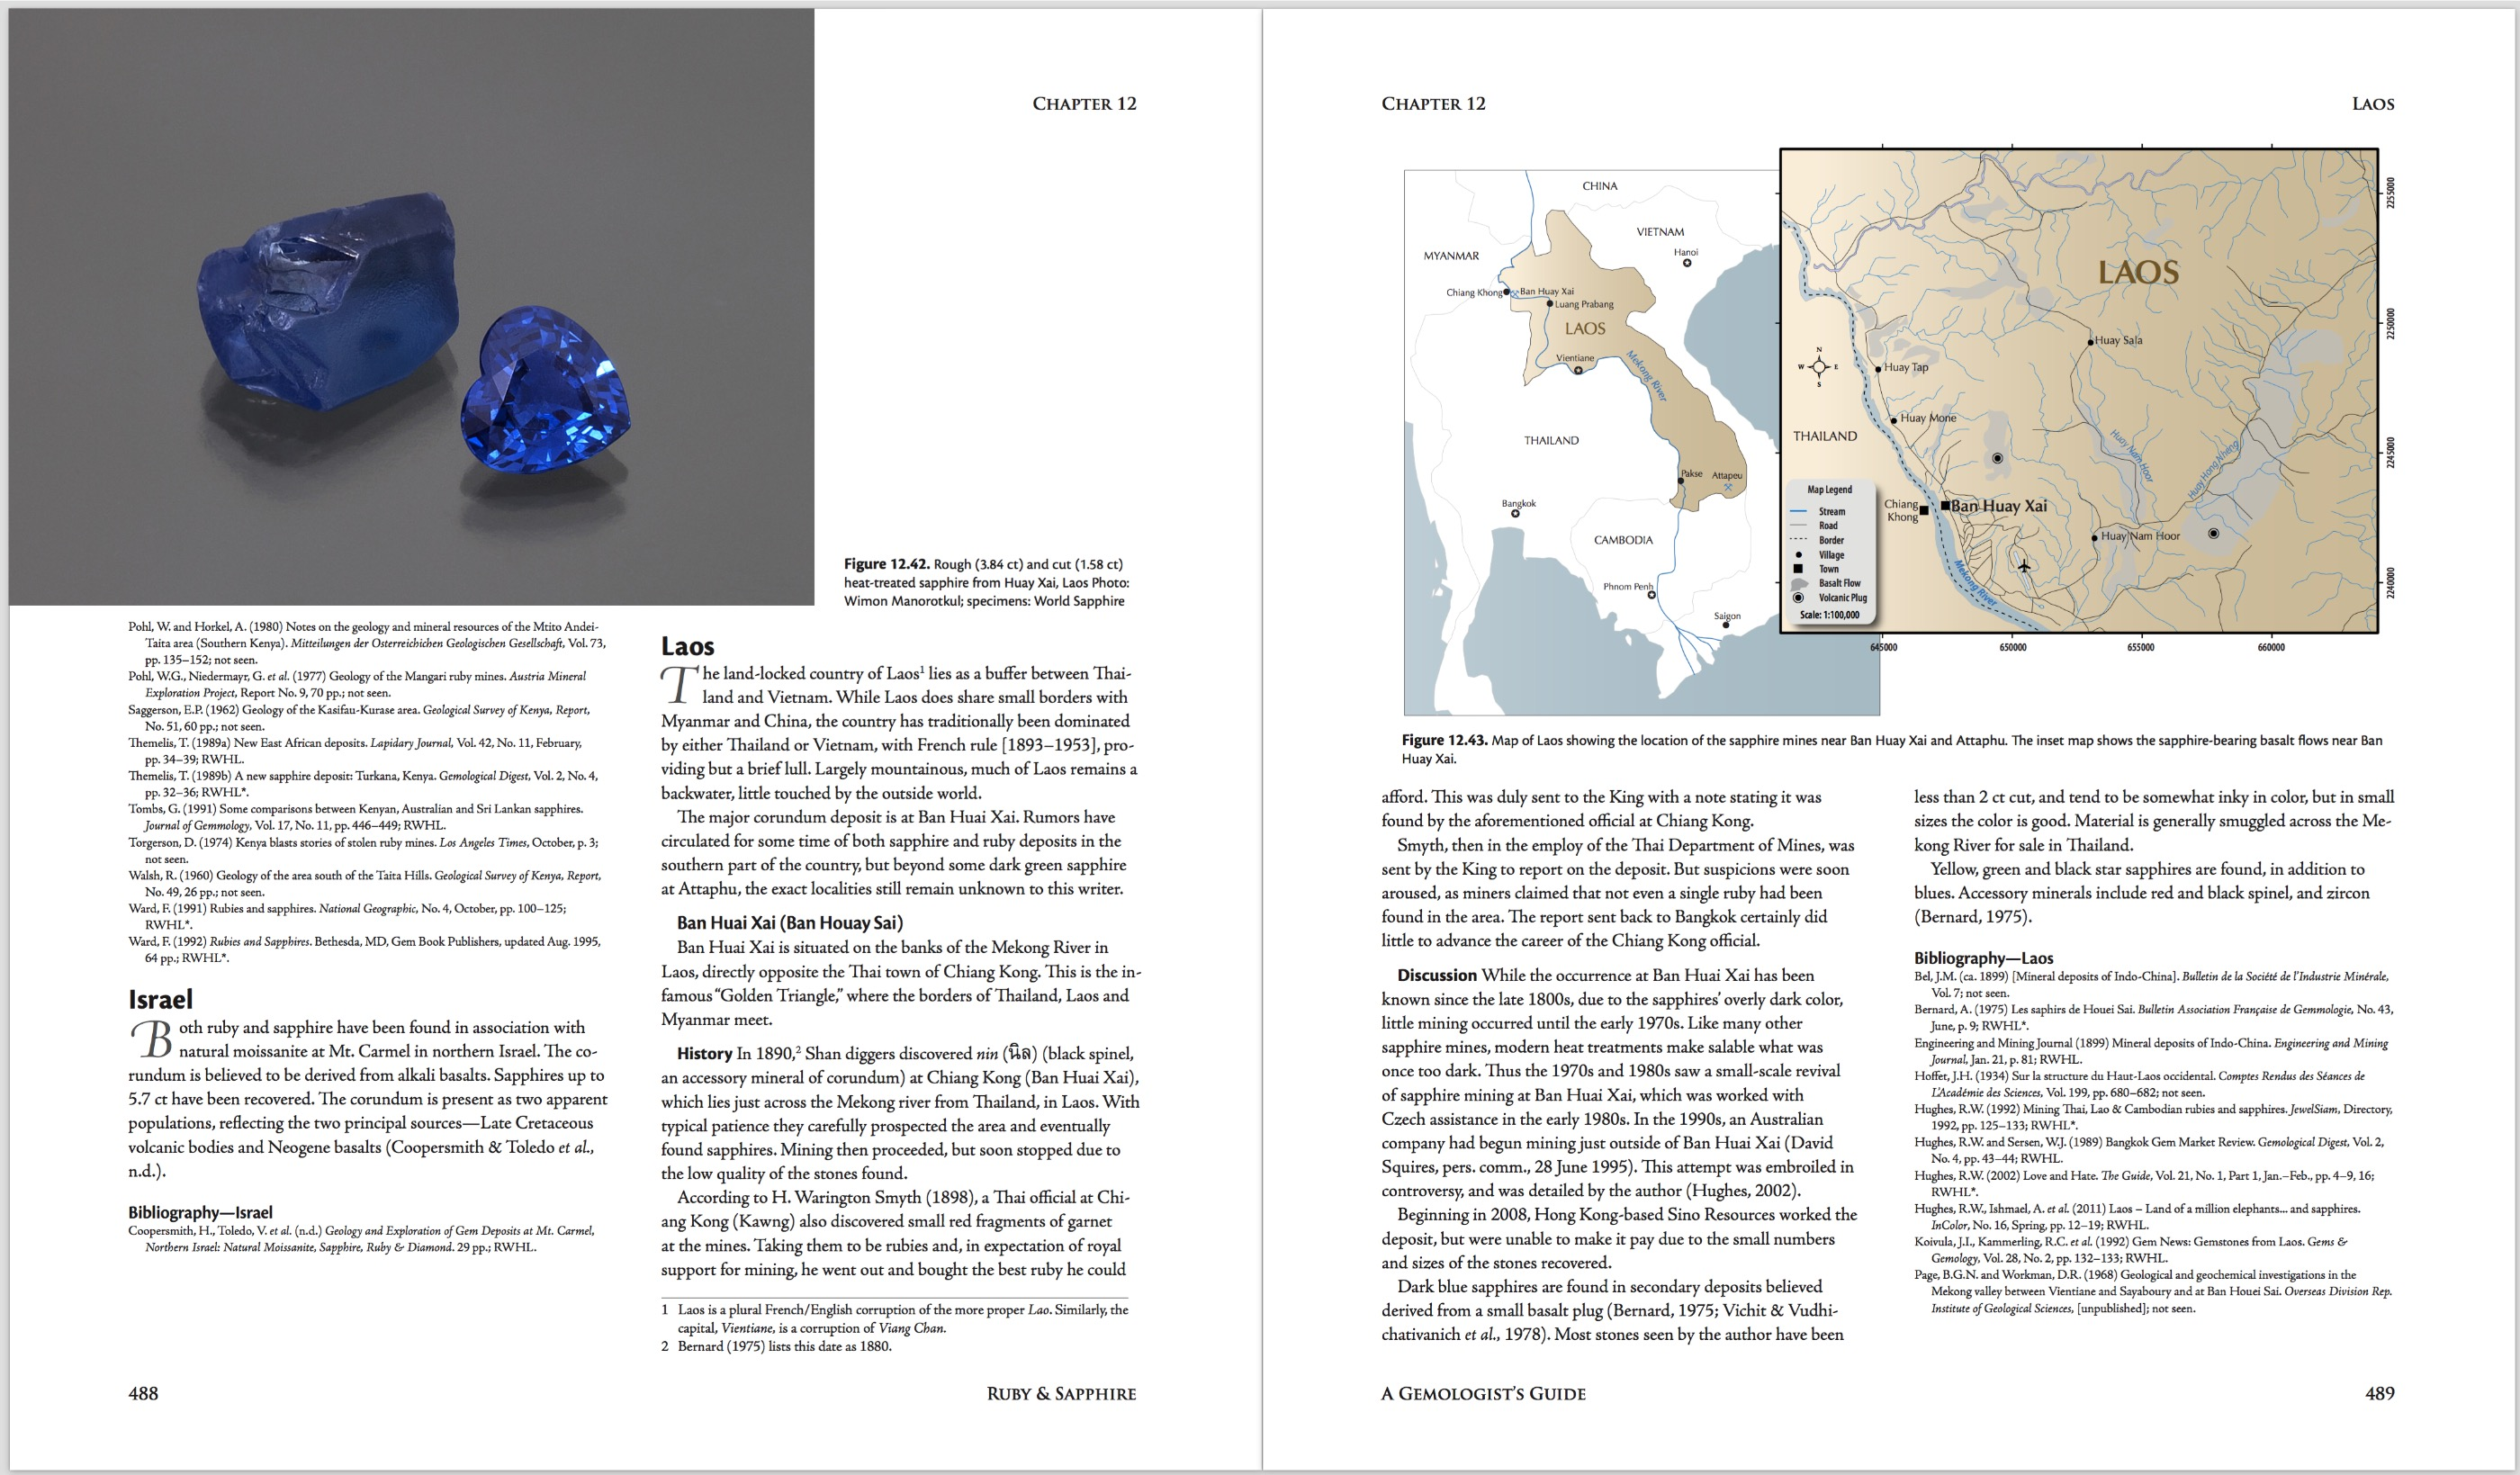 Ruby & Sapphire: A Gemologist's Guide – World Sources: Laos